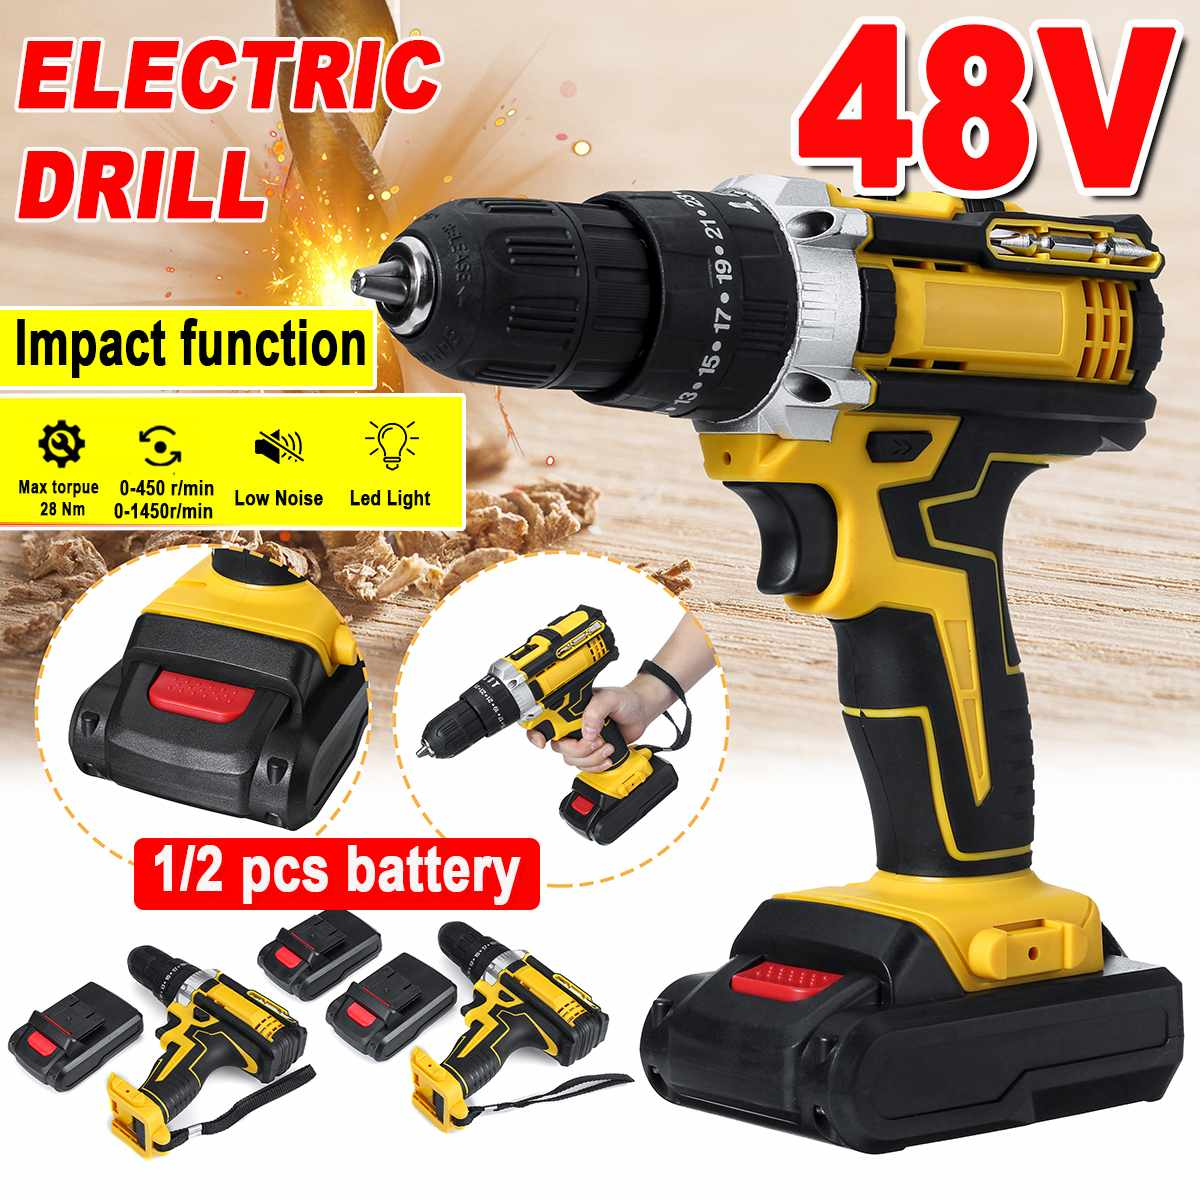 3 In 1 Cordless Impact Electric Drill Screwdriver 48V 18 Gear Torque 2 Speed Mini Power Driver With 2 Rechargeable Battery